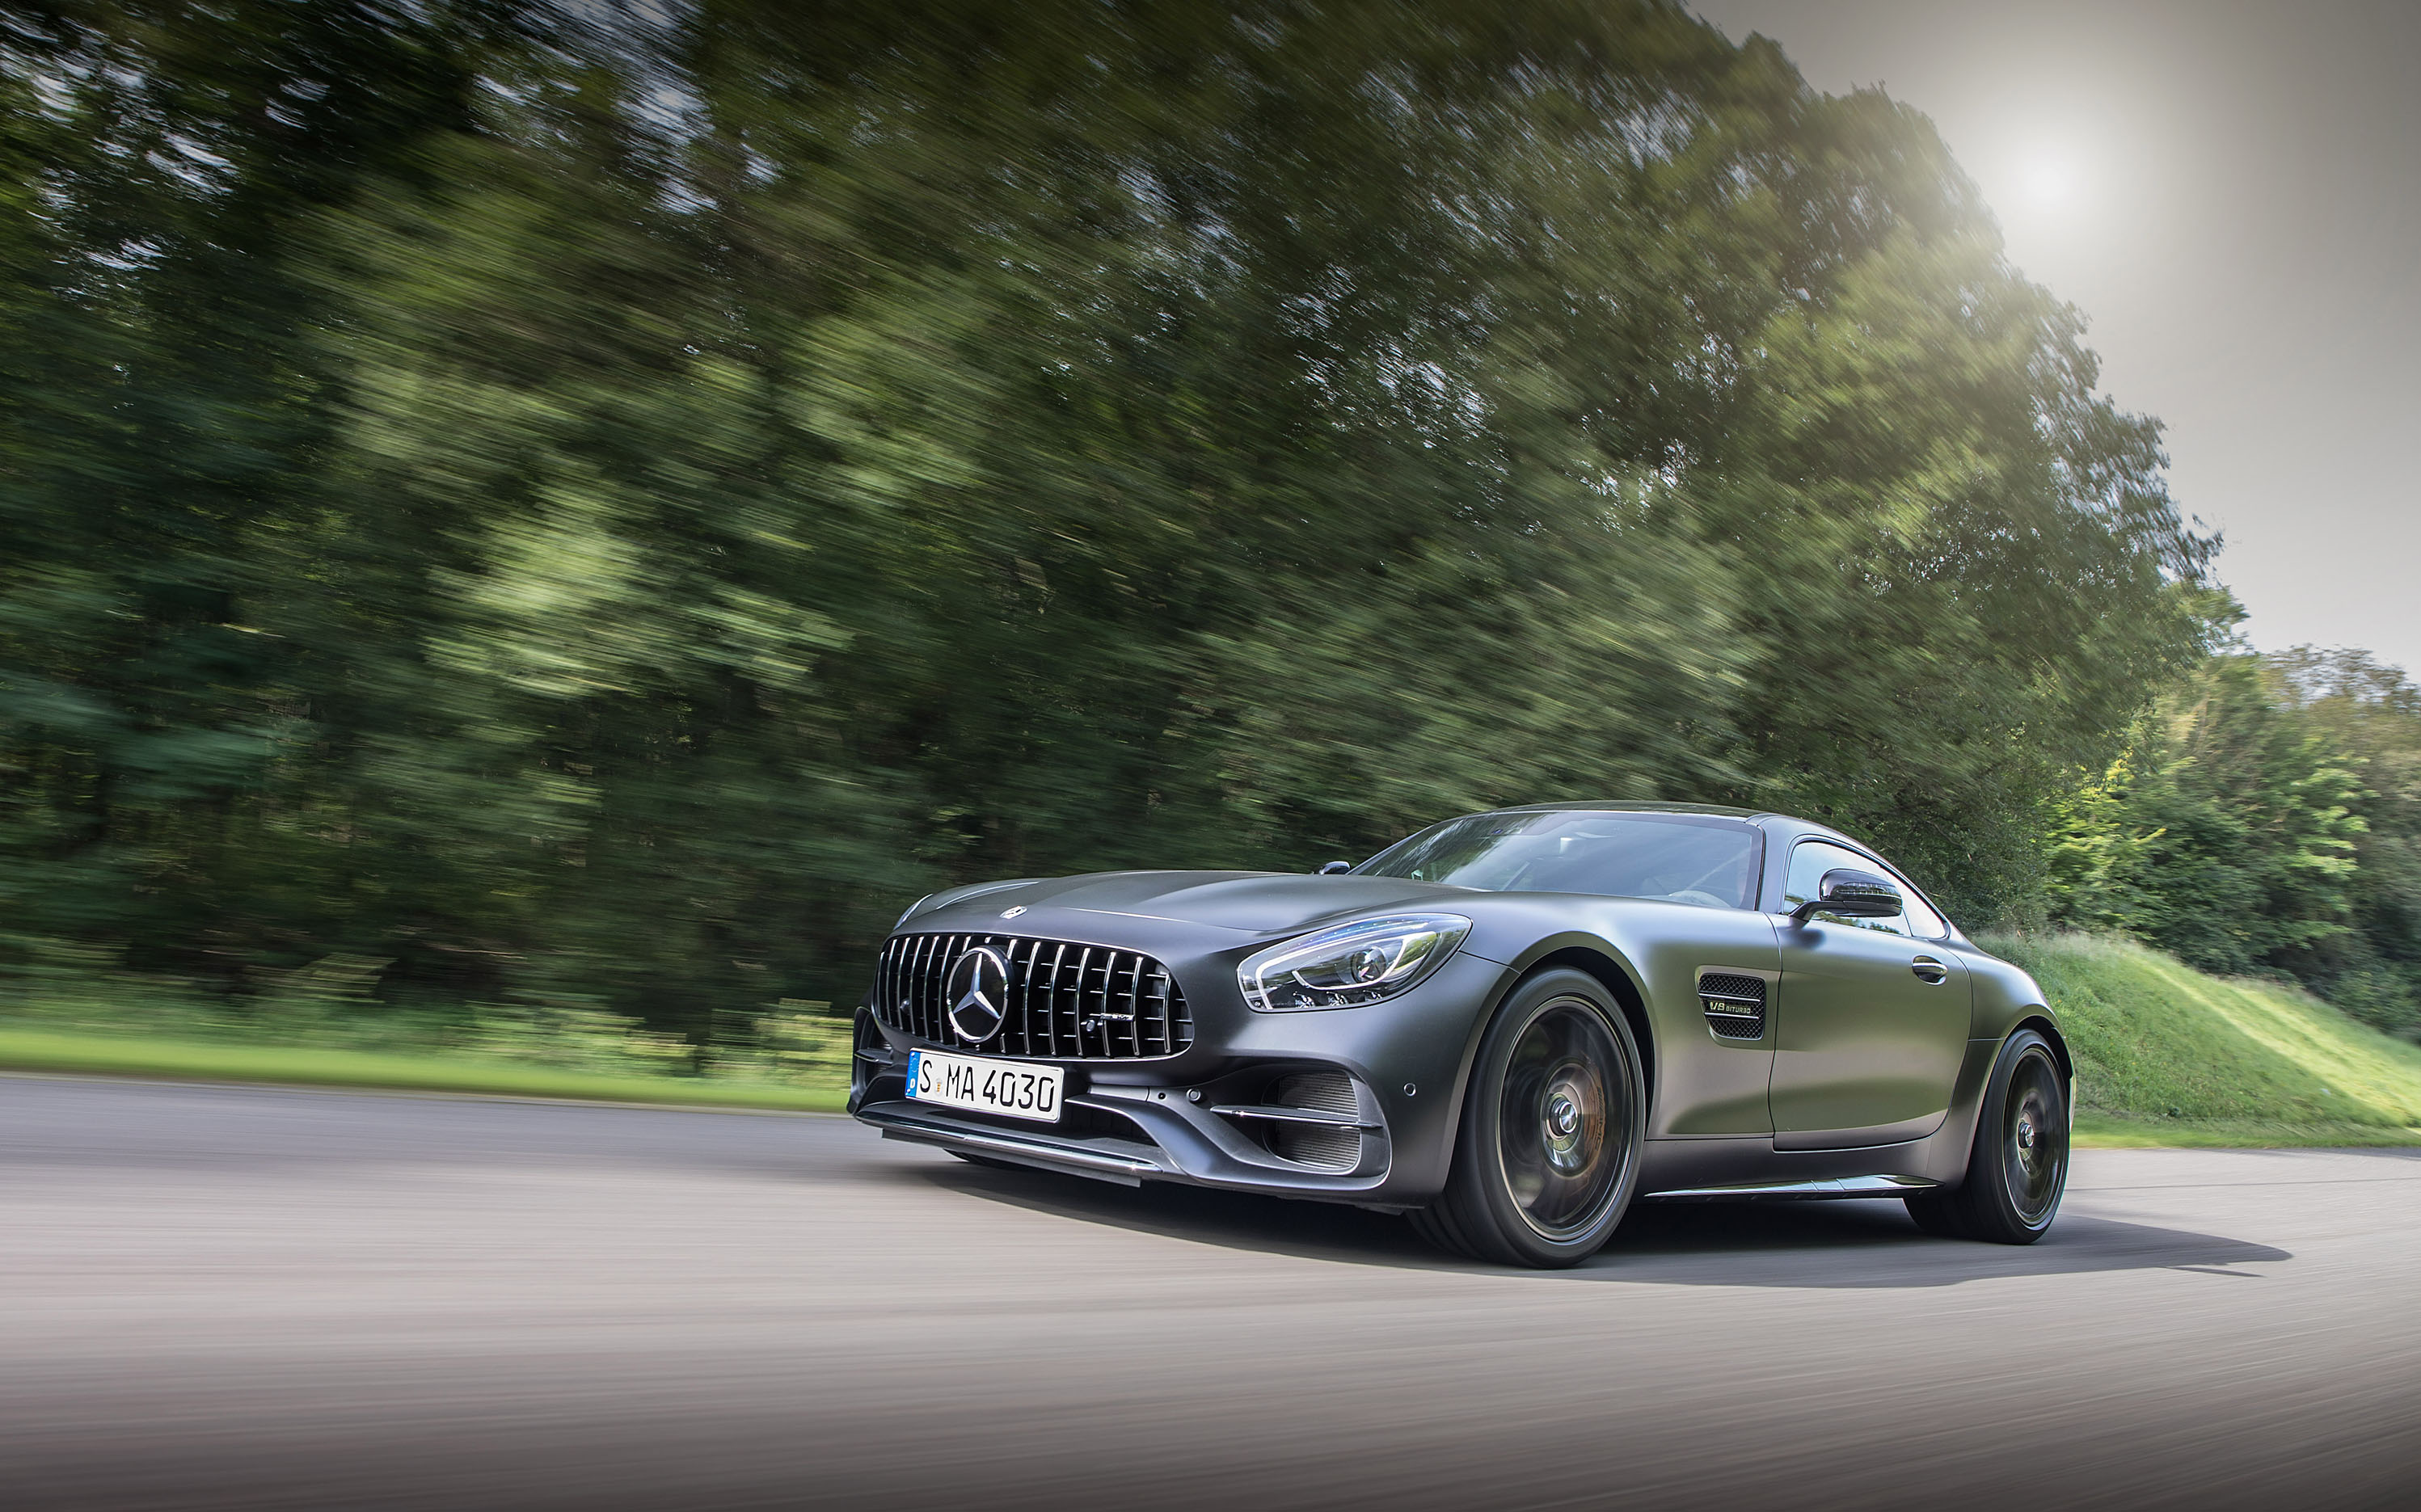 2018 mercedes amg gt c first drive review amg s celebratory gift is a delight. Black Bedroom Furniture Sets. Home Design Ideas